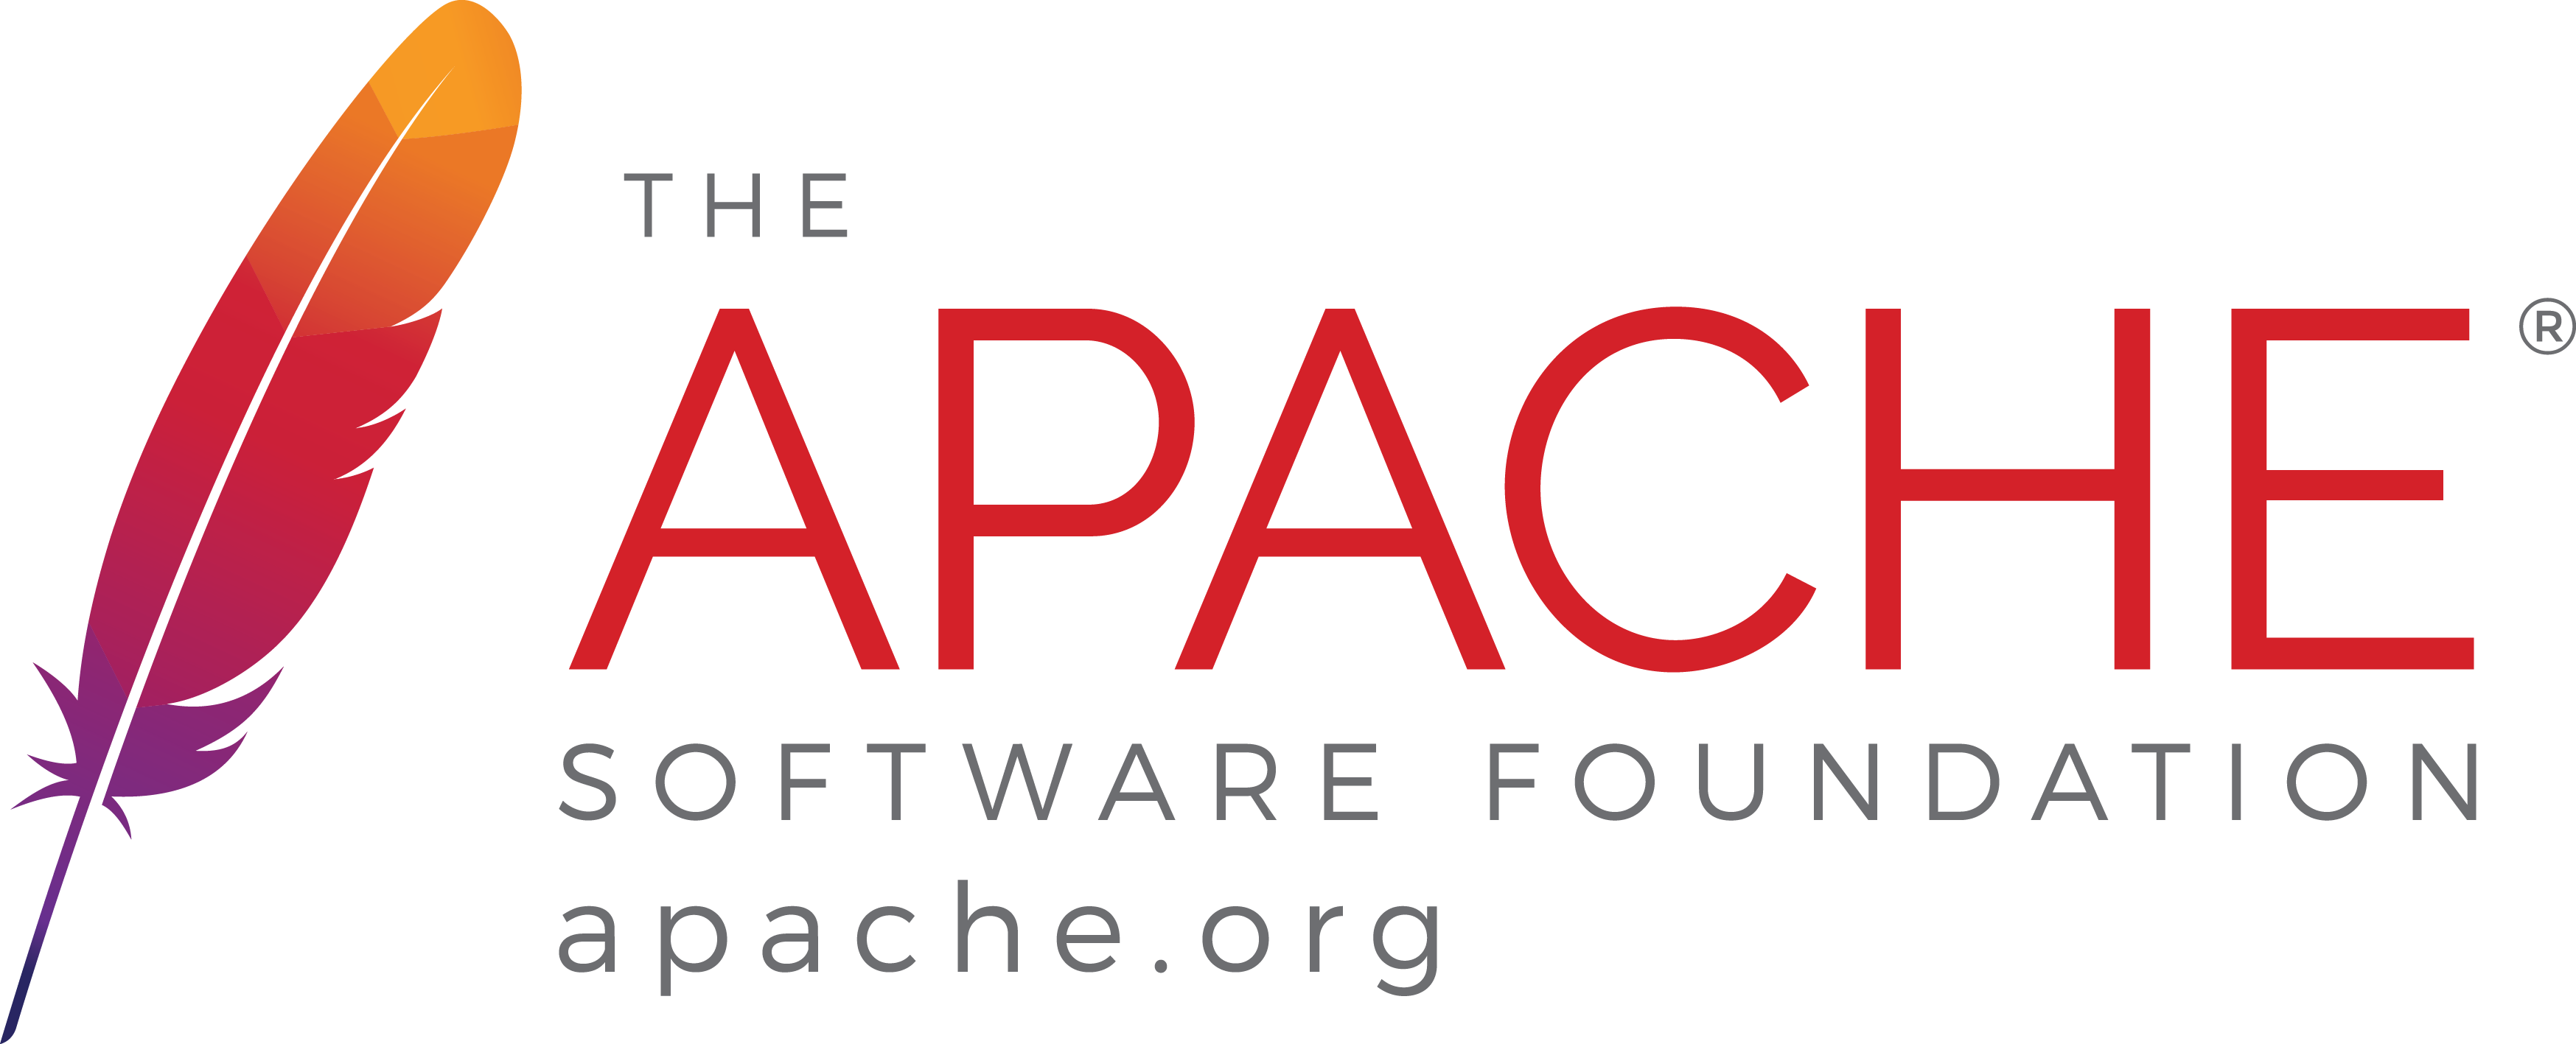 Apache software foundation graphics logo buycottarizona Gallery